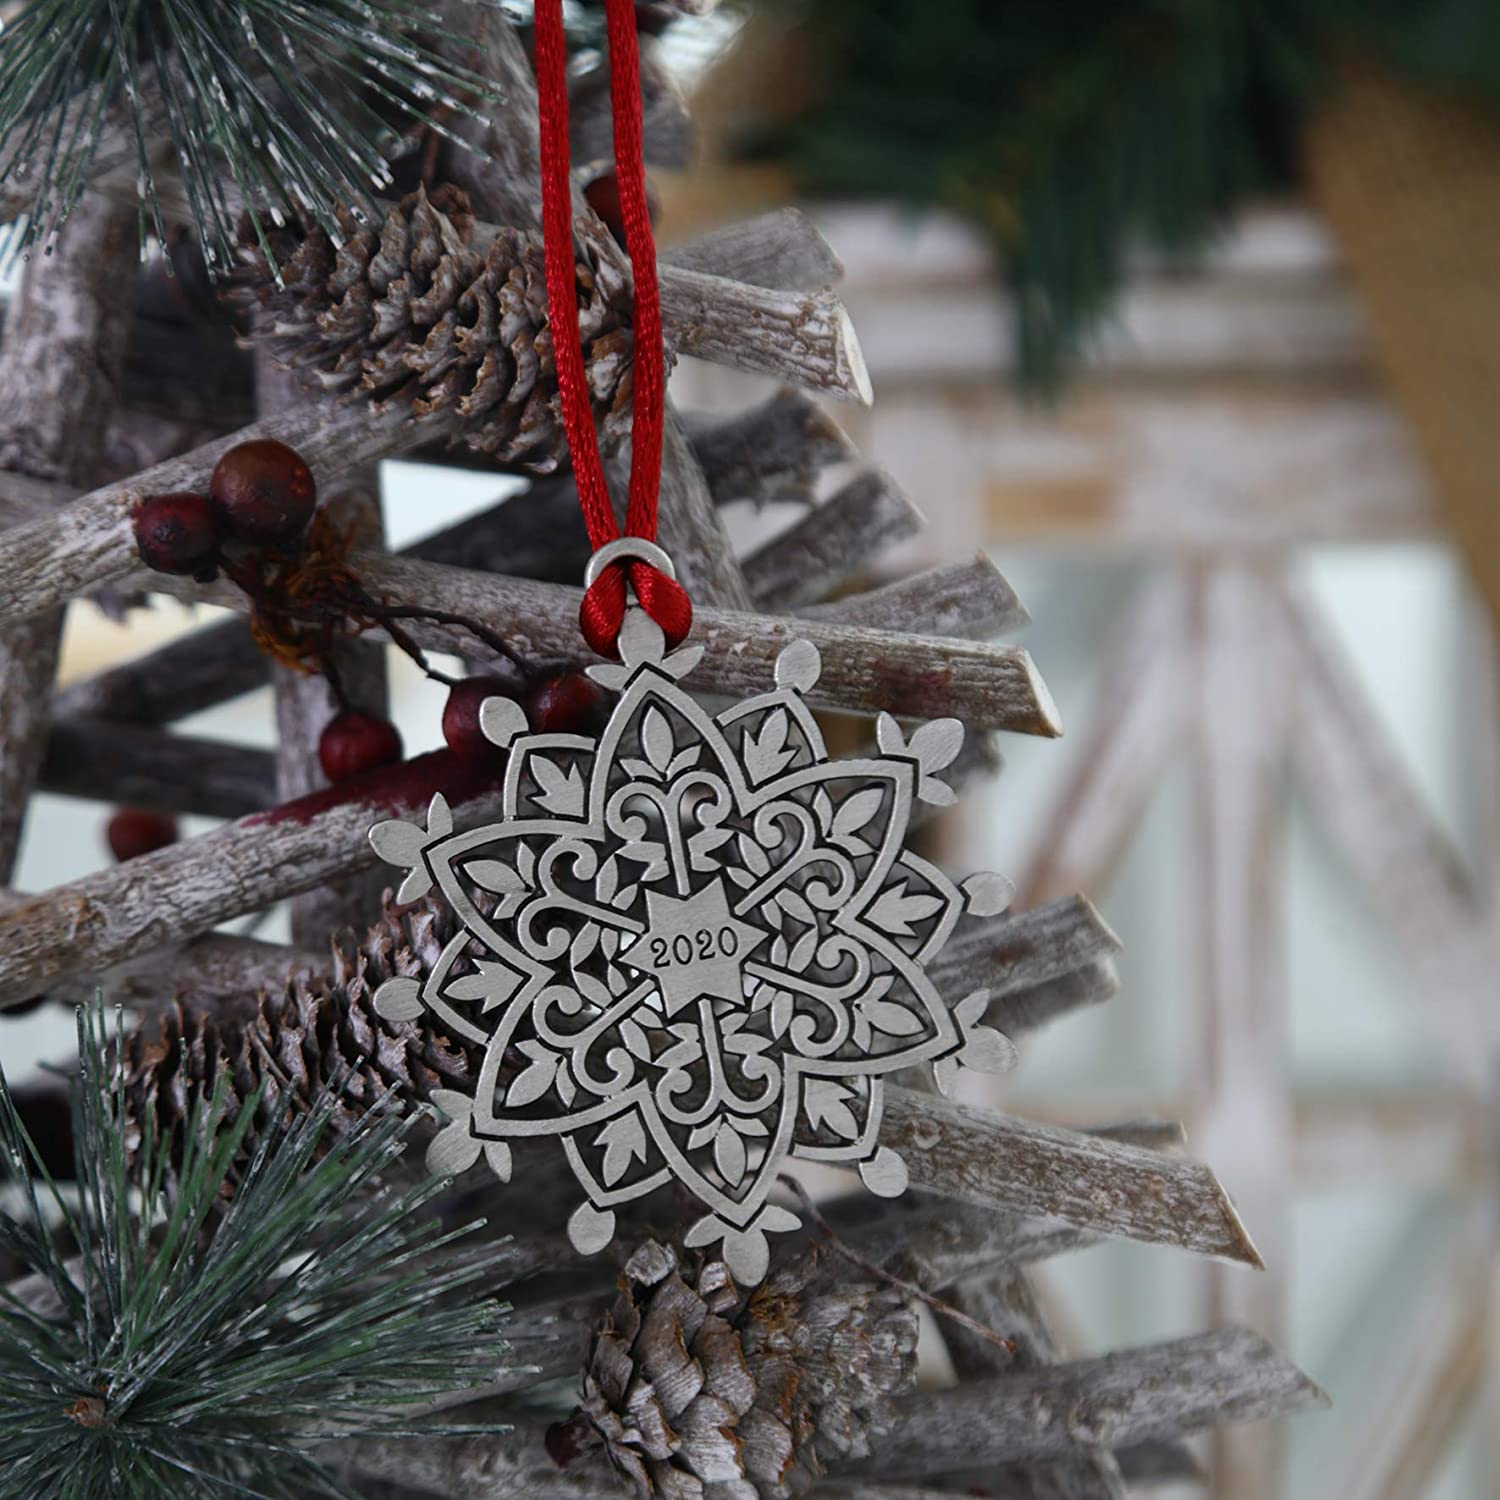 TZSSP Pewter Decorative Hanging Ornaments Holiday Christmas Ornament,Snowflake